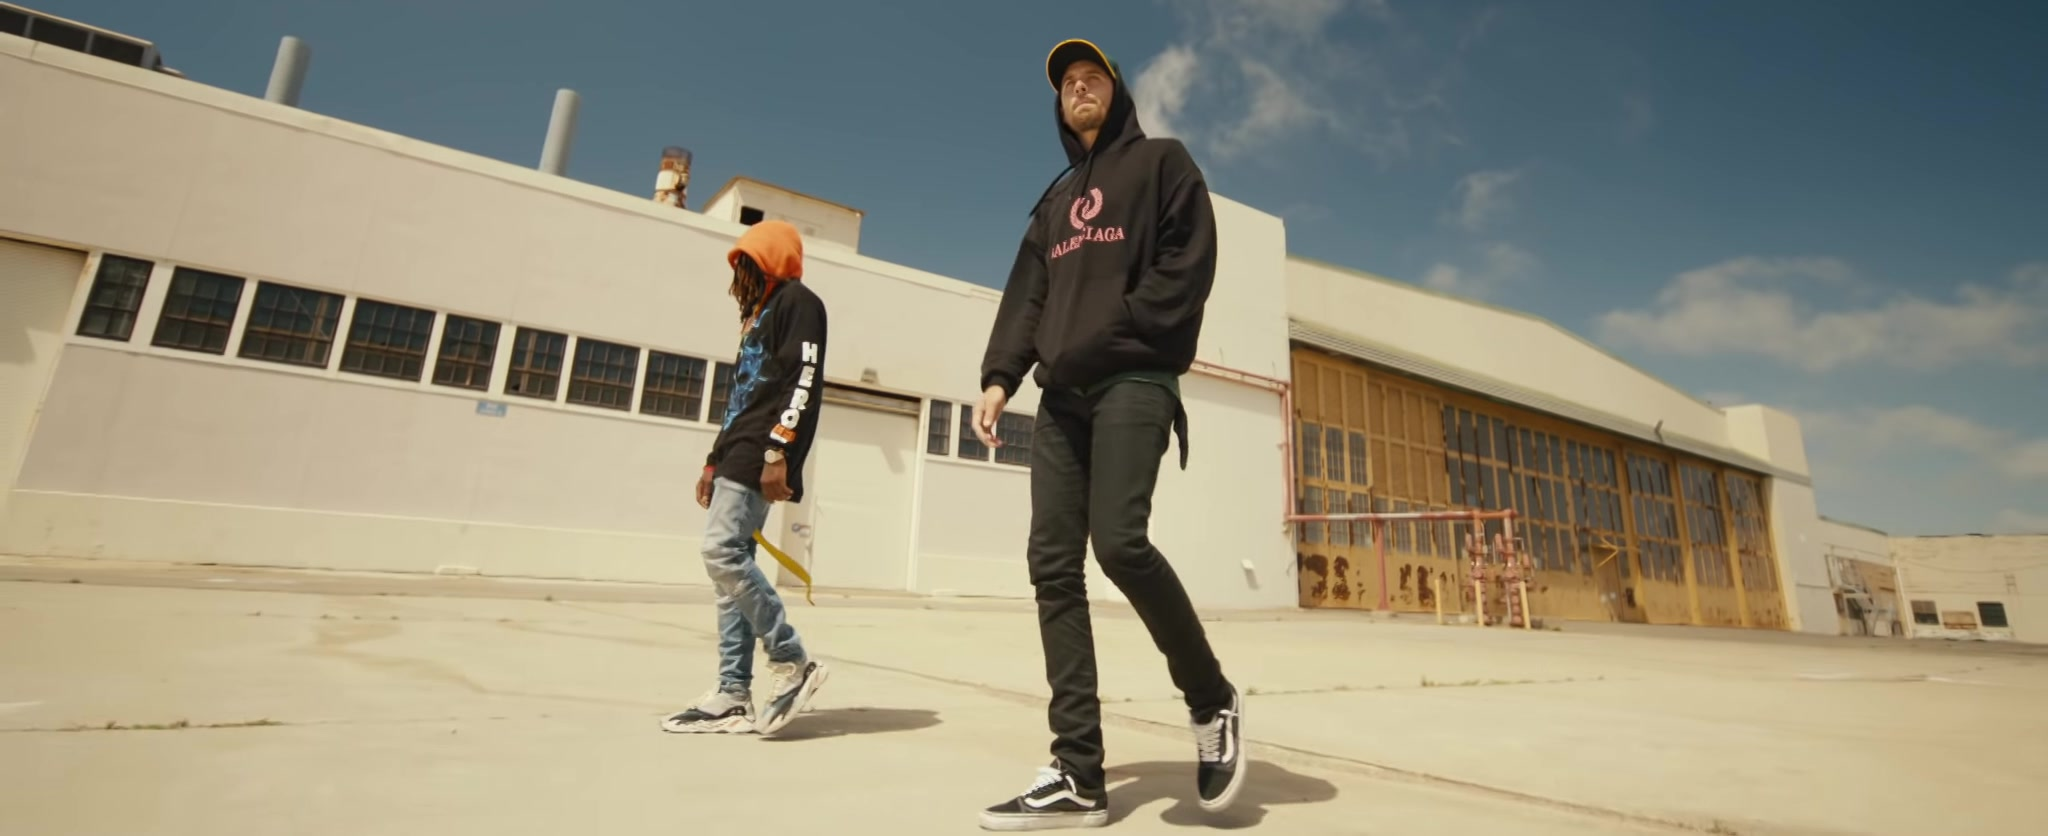 """ae9a1163b9 Balenciaga Hoodie and Vans Shoes Worn by G-Eazy in """"Power"""" (2018 ..."""